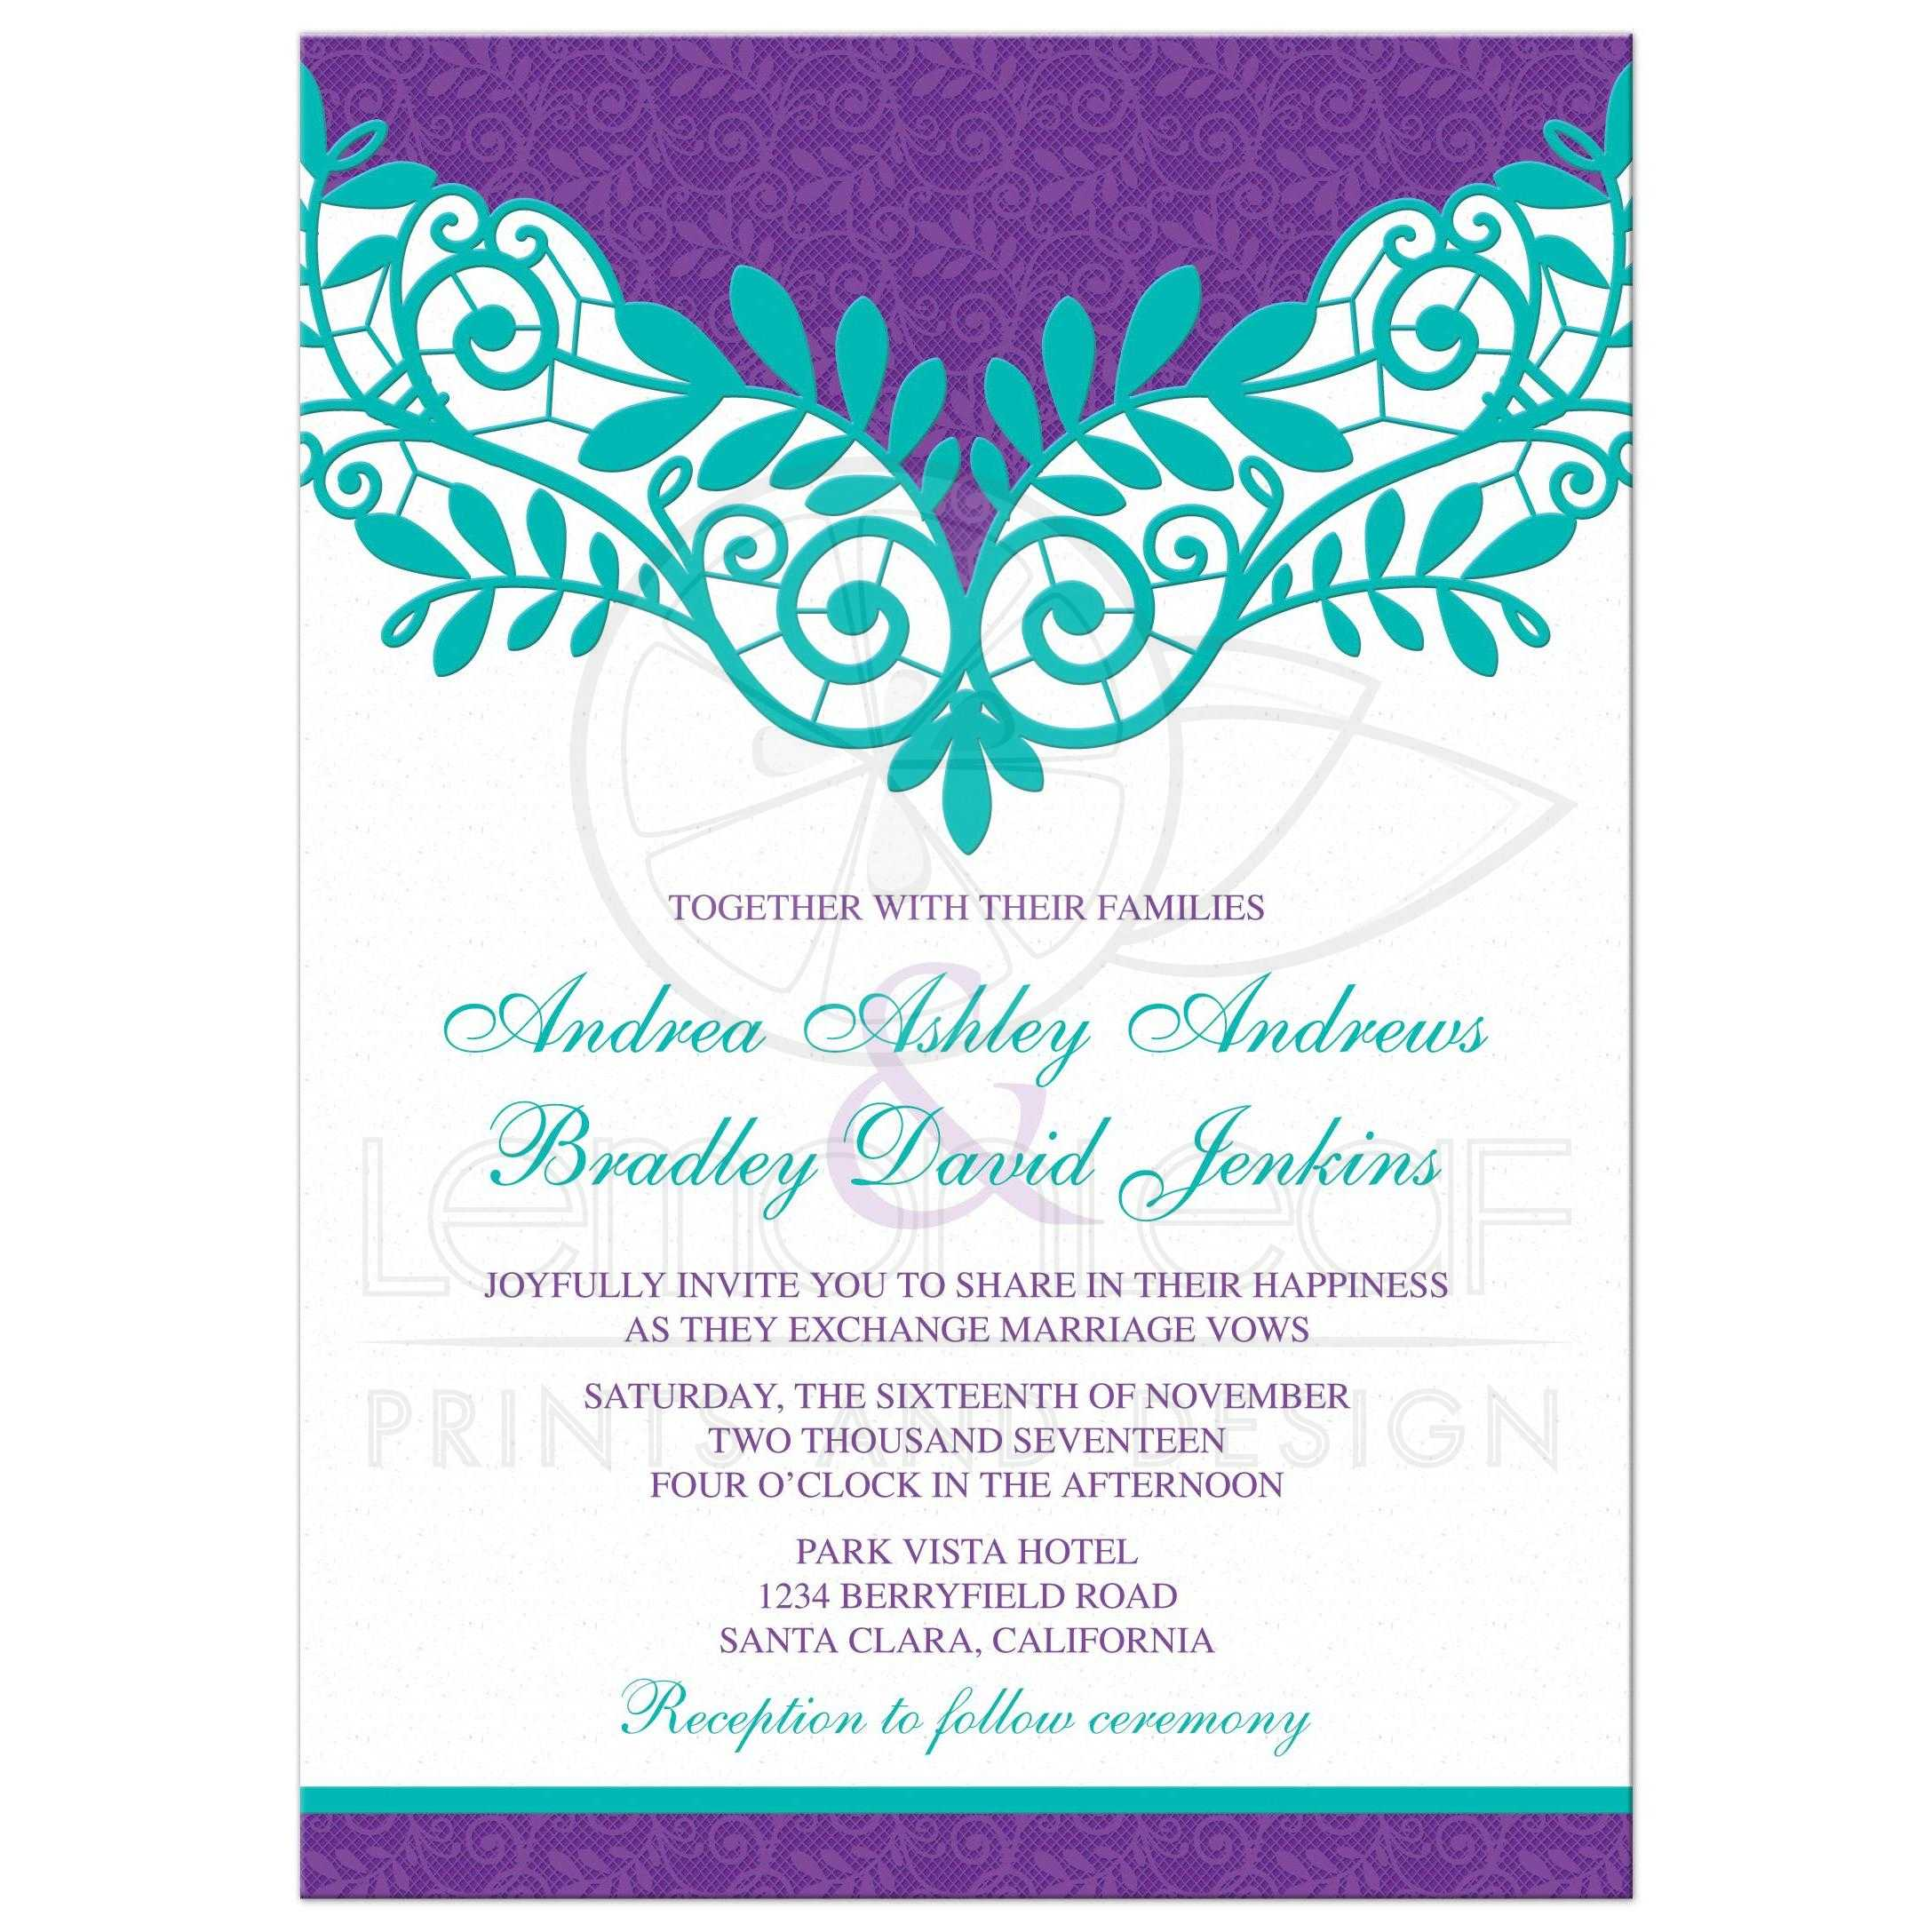 Personalized Save Date Cards